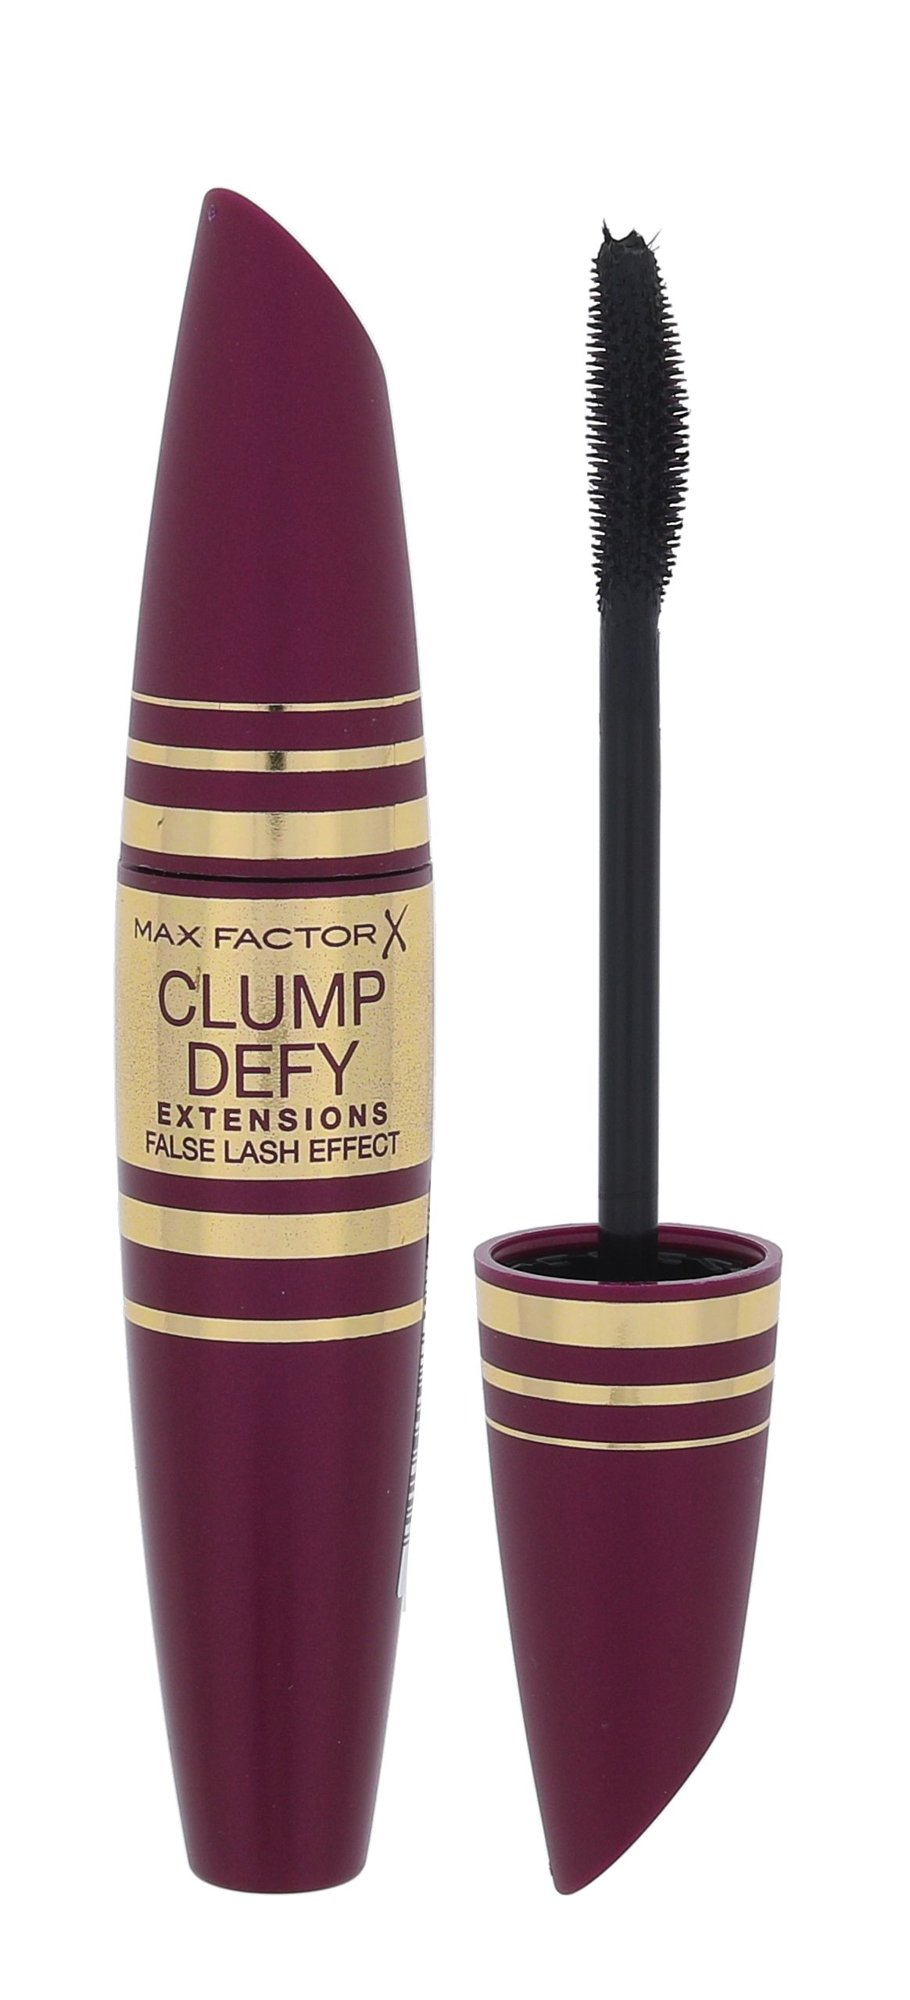 Max Factor Clump Defy Extensions Mascara Cosmetic 13,1ml Black